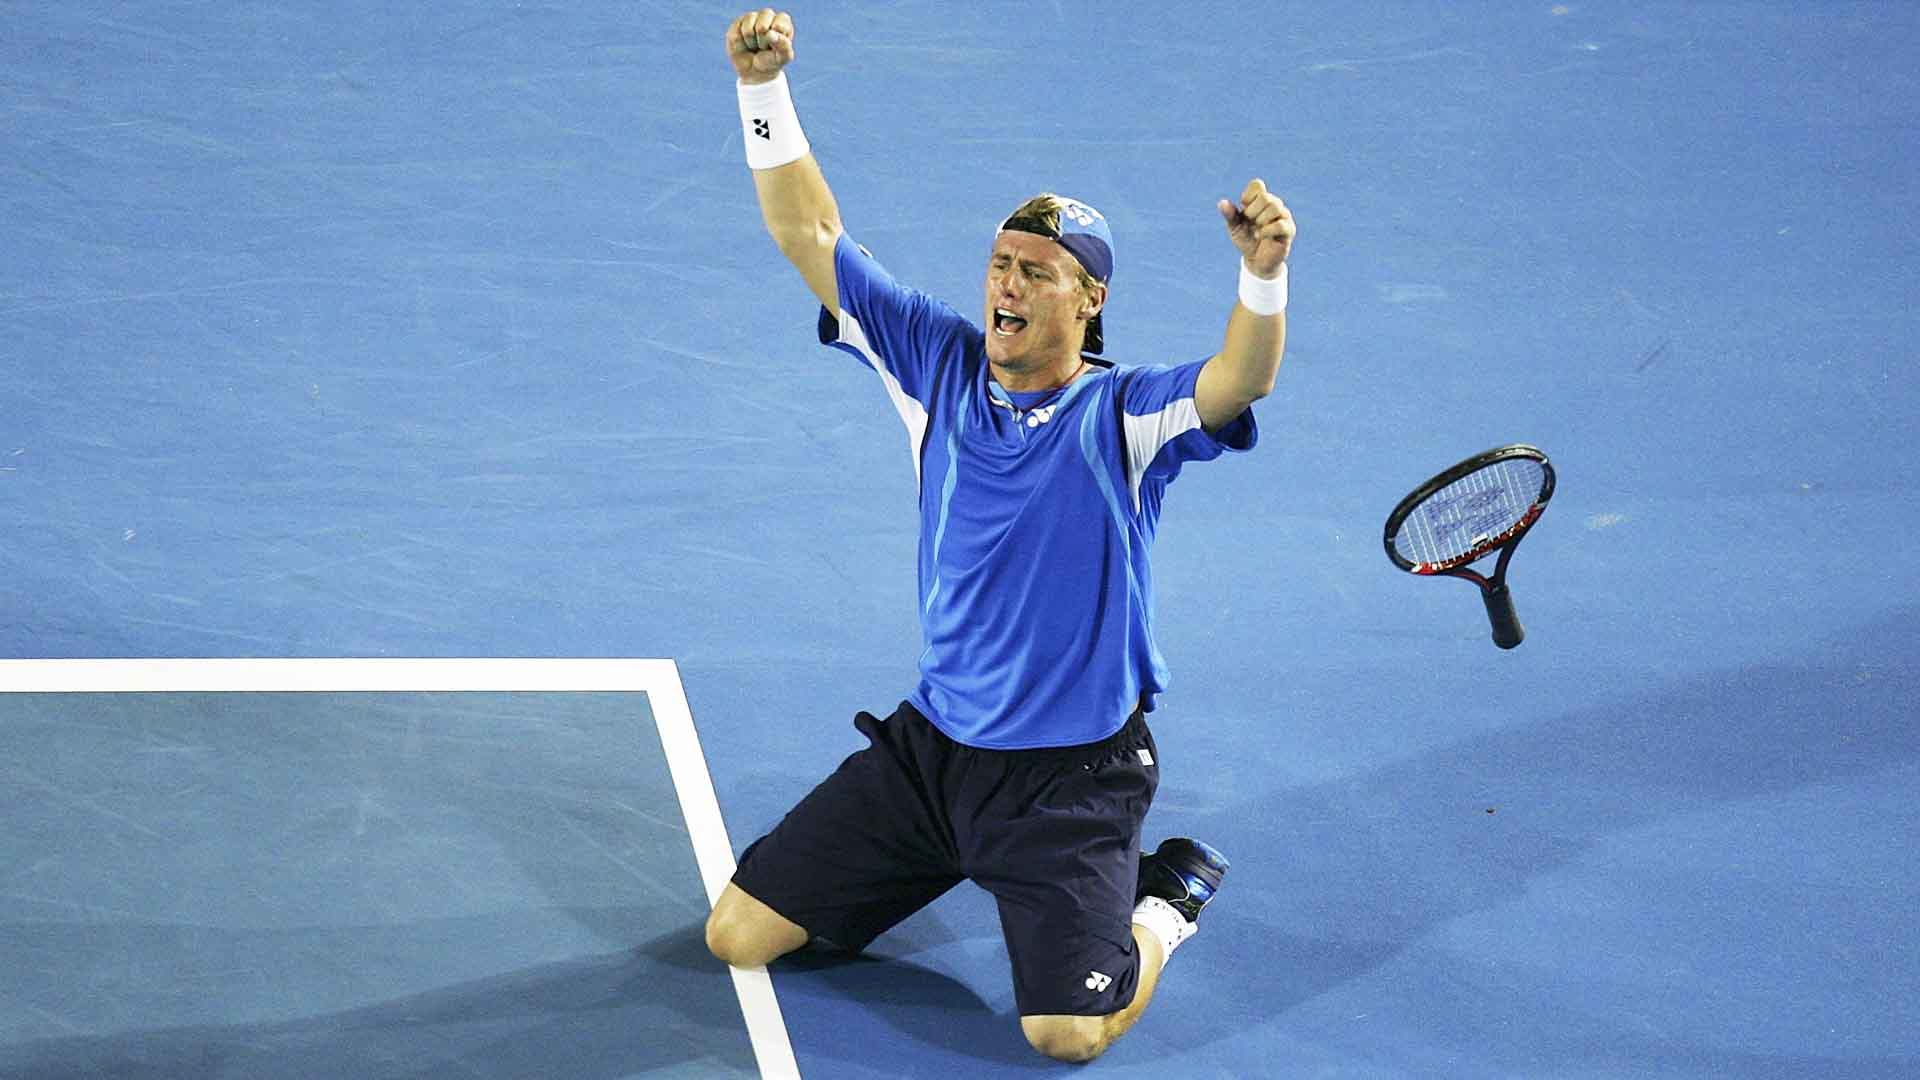 <a href='/en/players/lleyton-hewitt/h432/overview'>Lleyton Hewitt</a> beats <a href='/en/players/marcos-baghdatis/b837/overview'>Marcos Baghdatis</a> in five sets at the <a href='/en/tournaments/australian-open/580/overview'>Australian Open</a> in 2008.